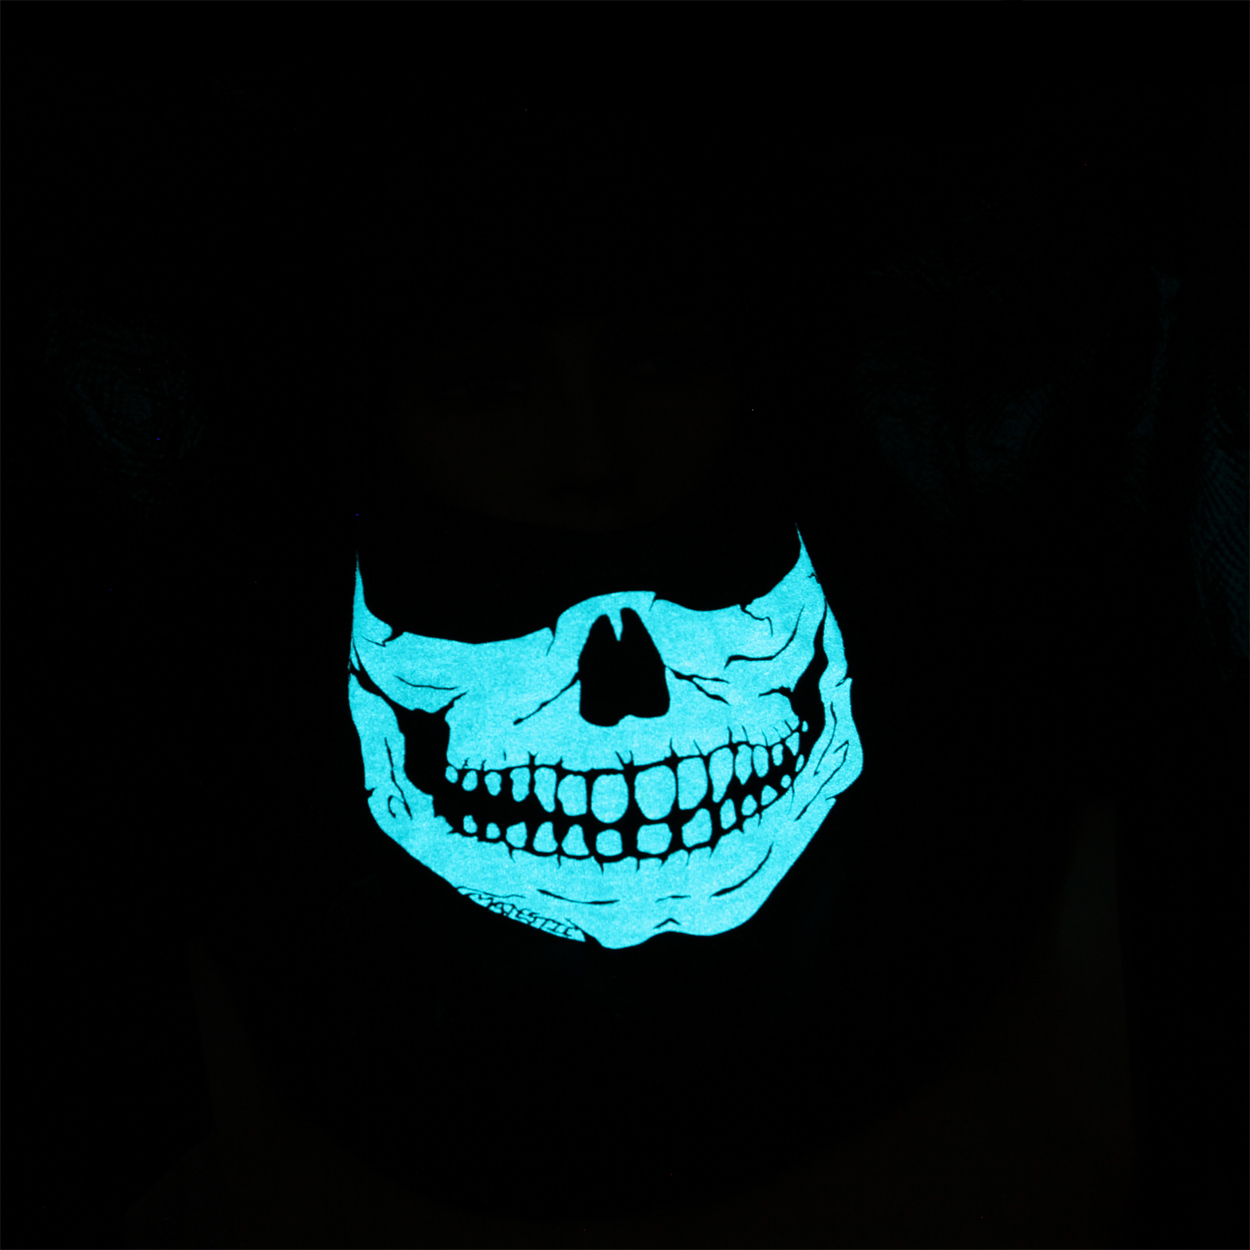 FIRE INK GLOW IN THE DARK BLUE SKULL